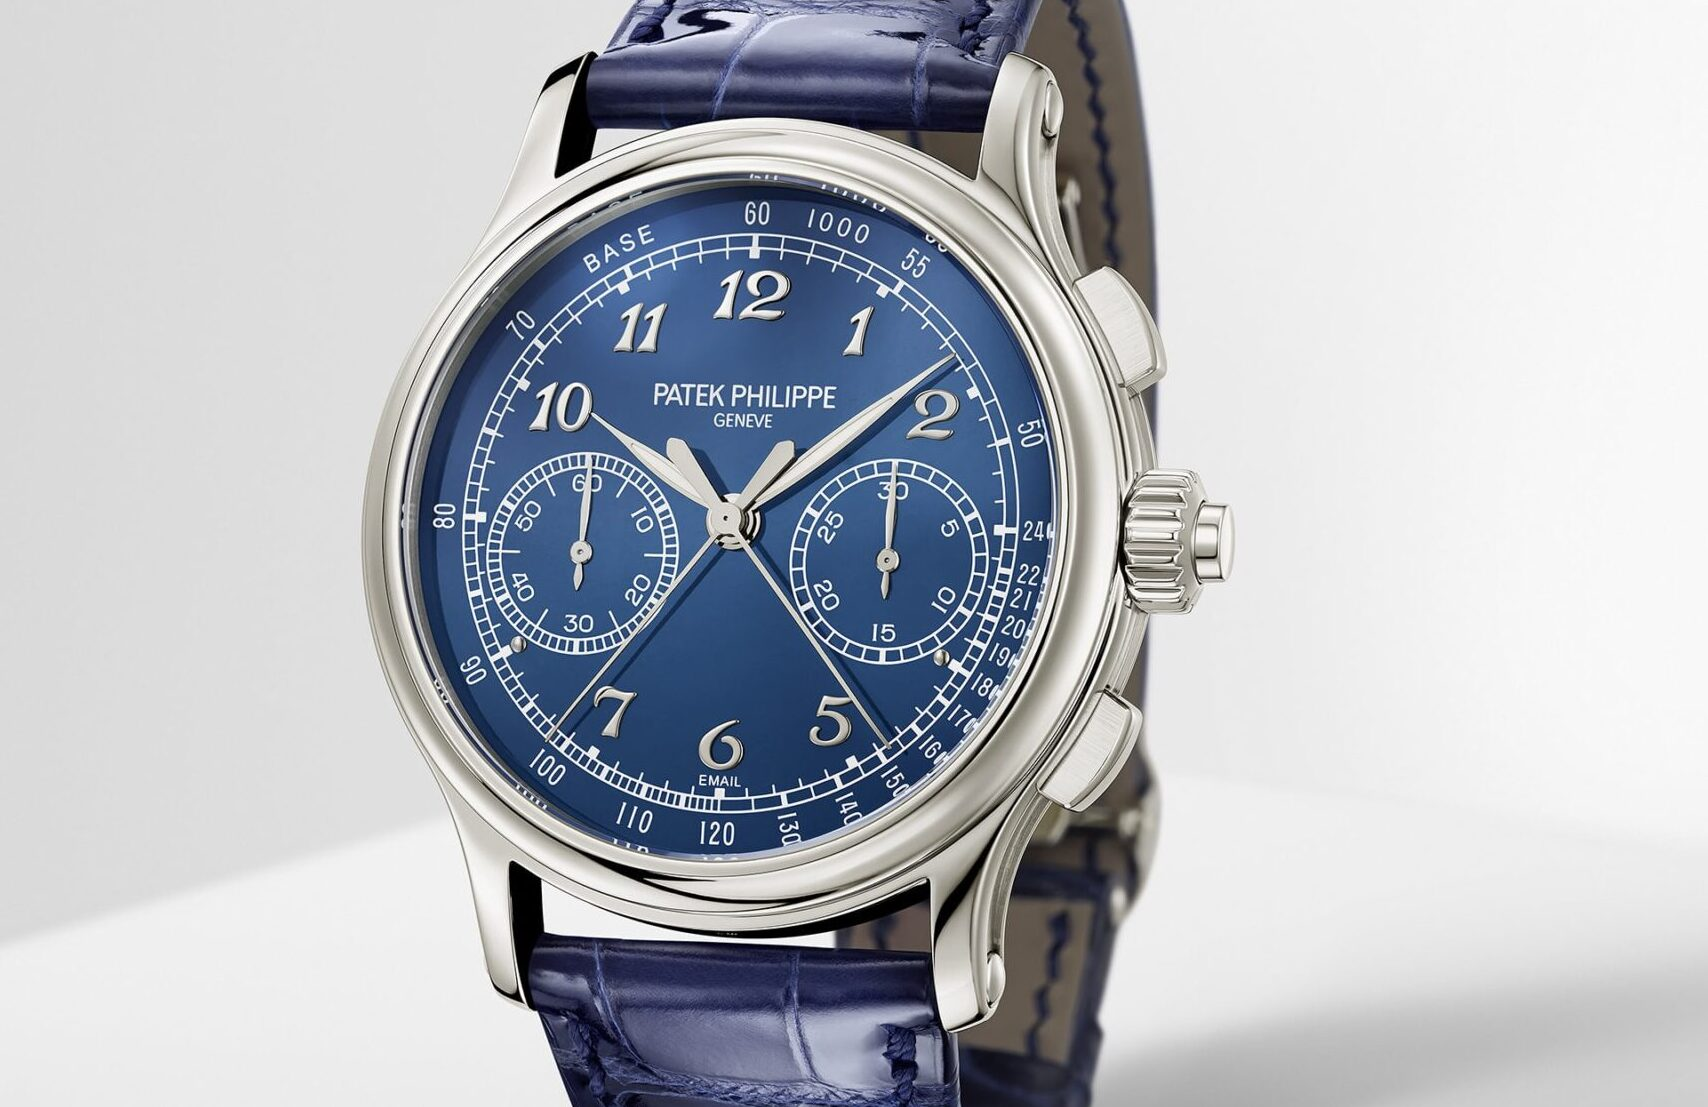 Patek Philippe Split Seconds Chronograph Ref 5370P -